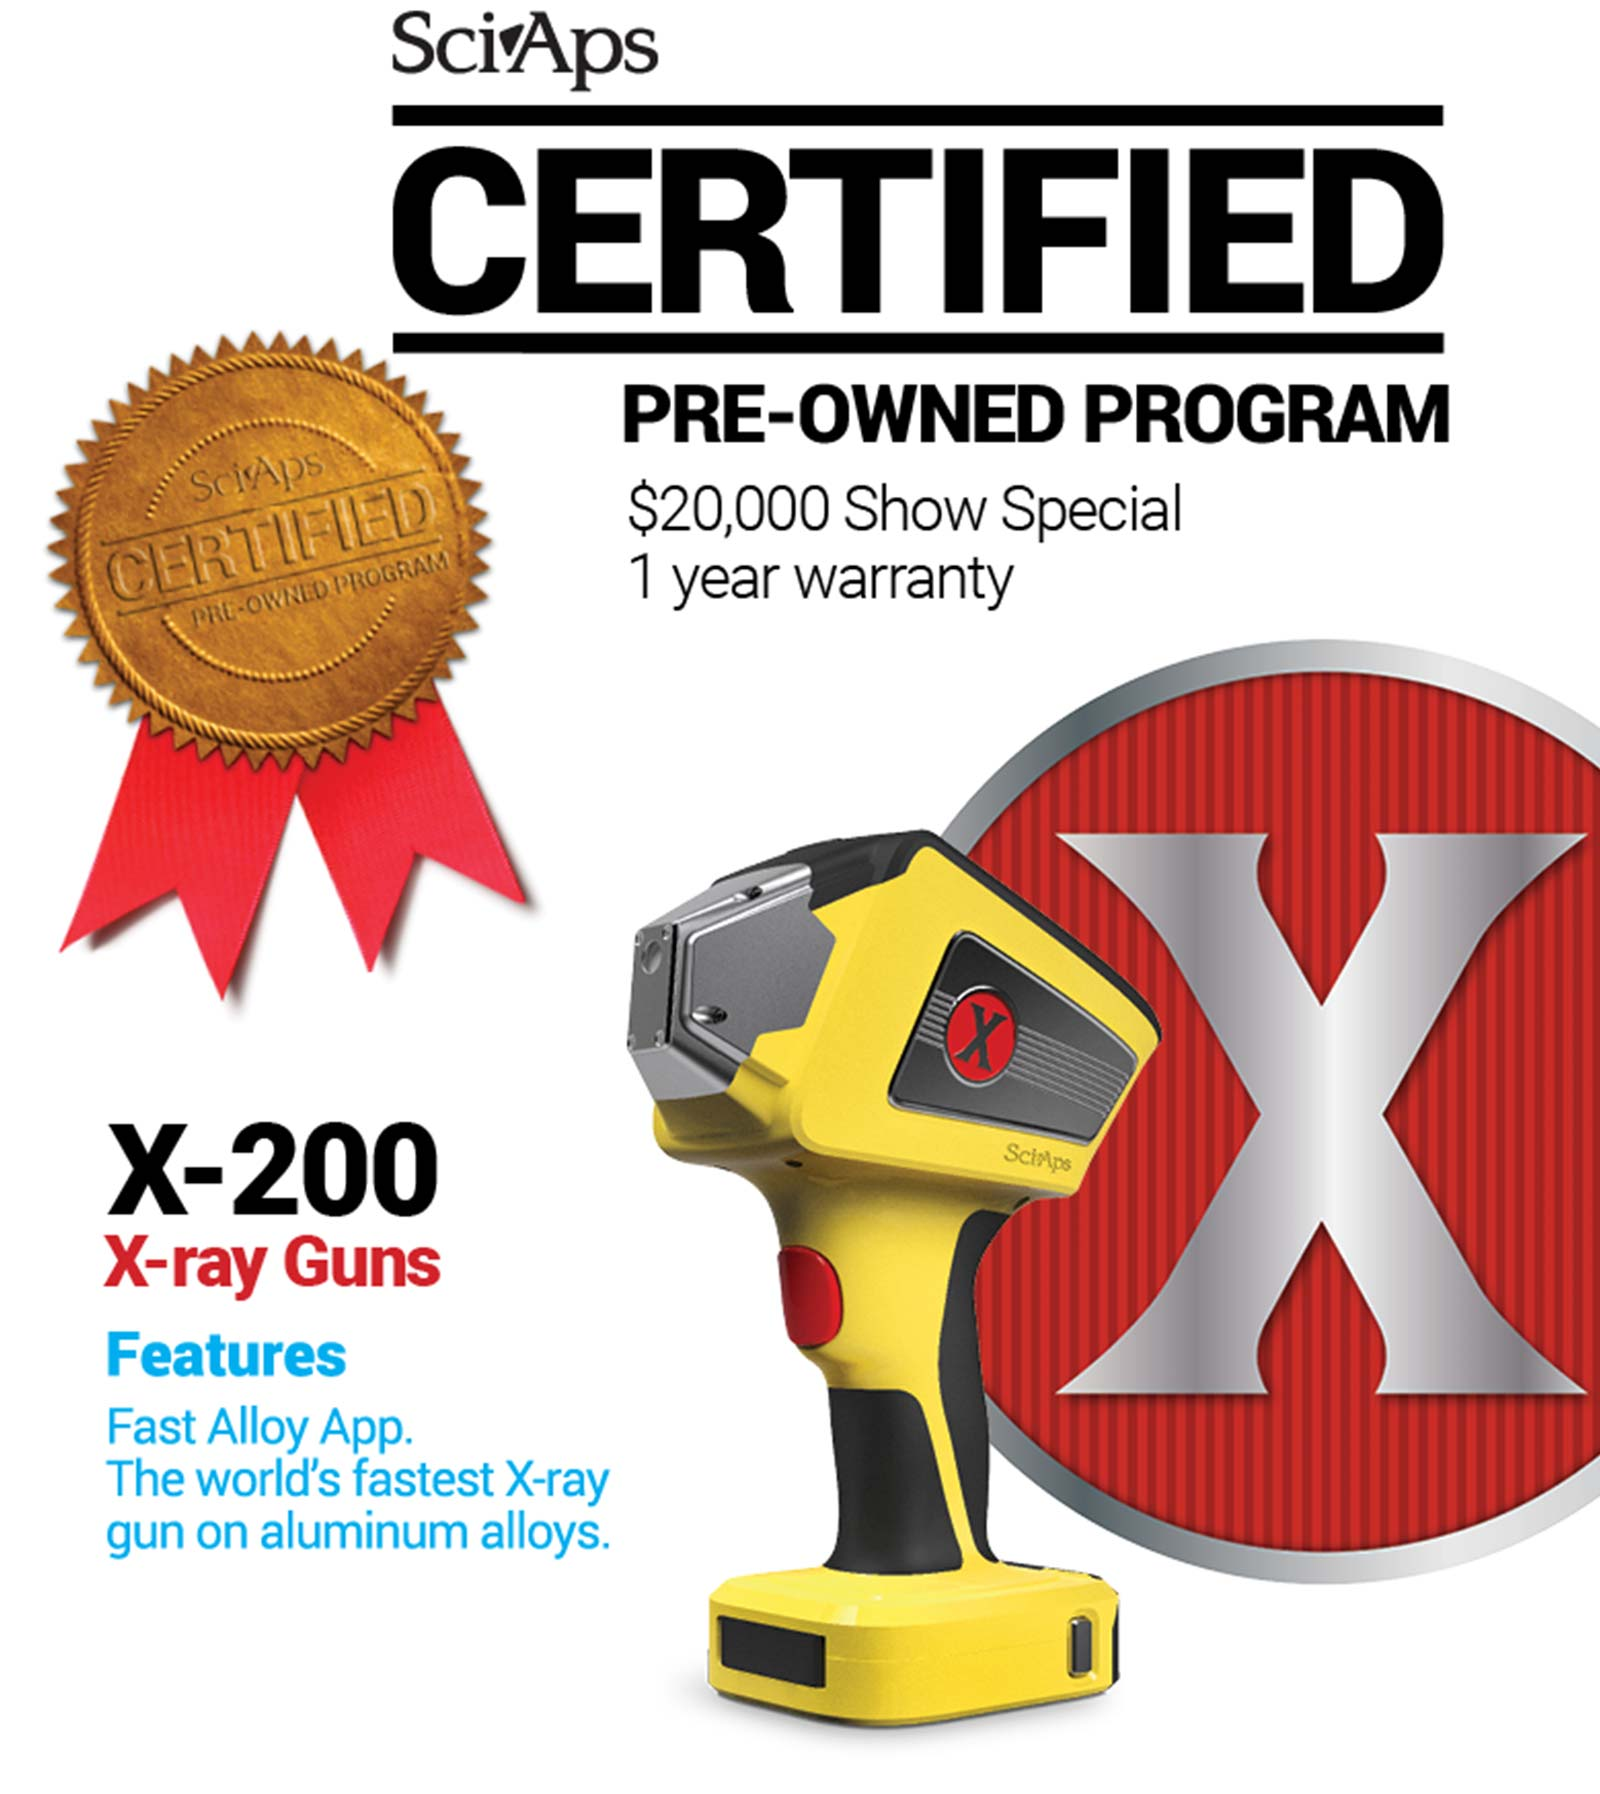 certified pre-owned X x-ray guns